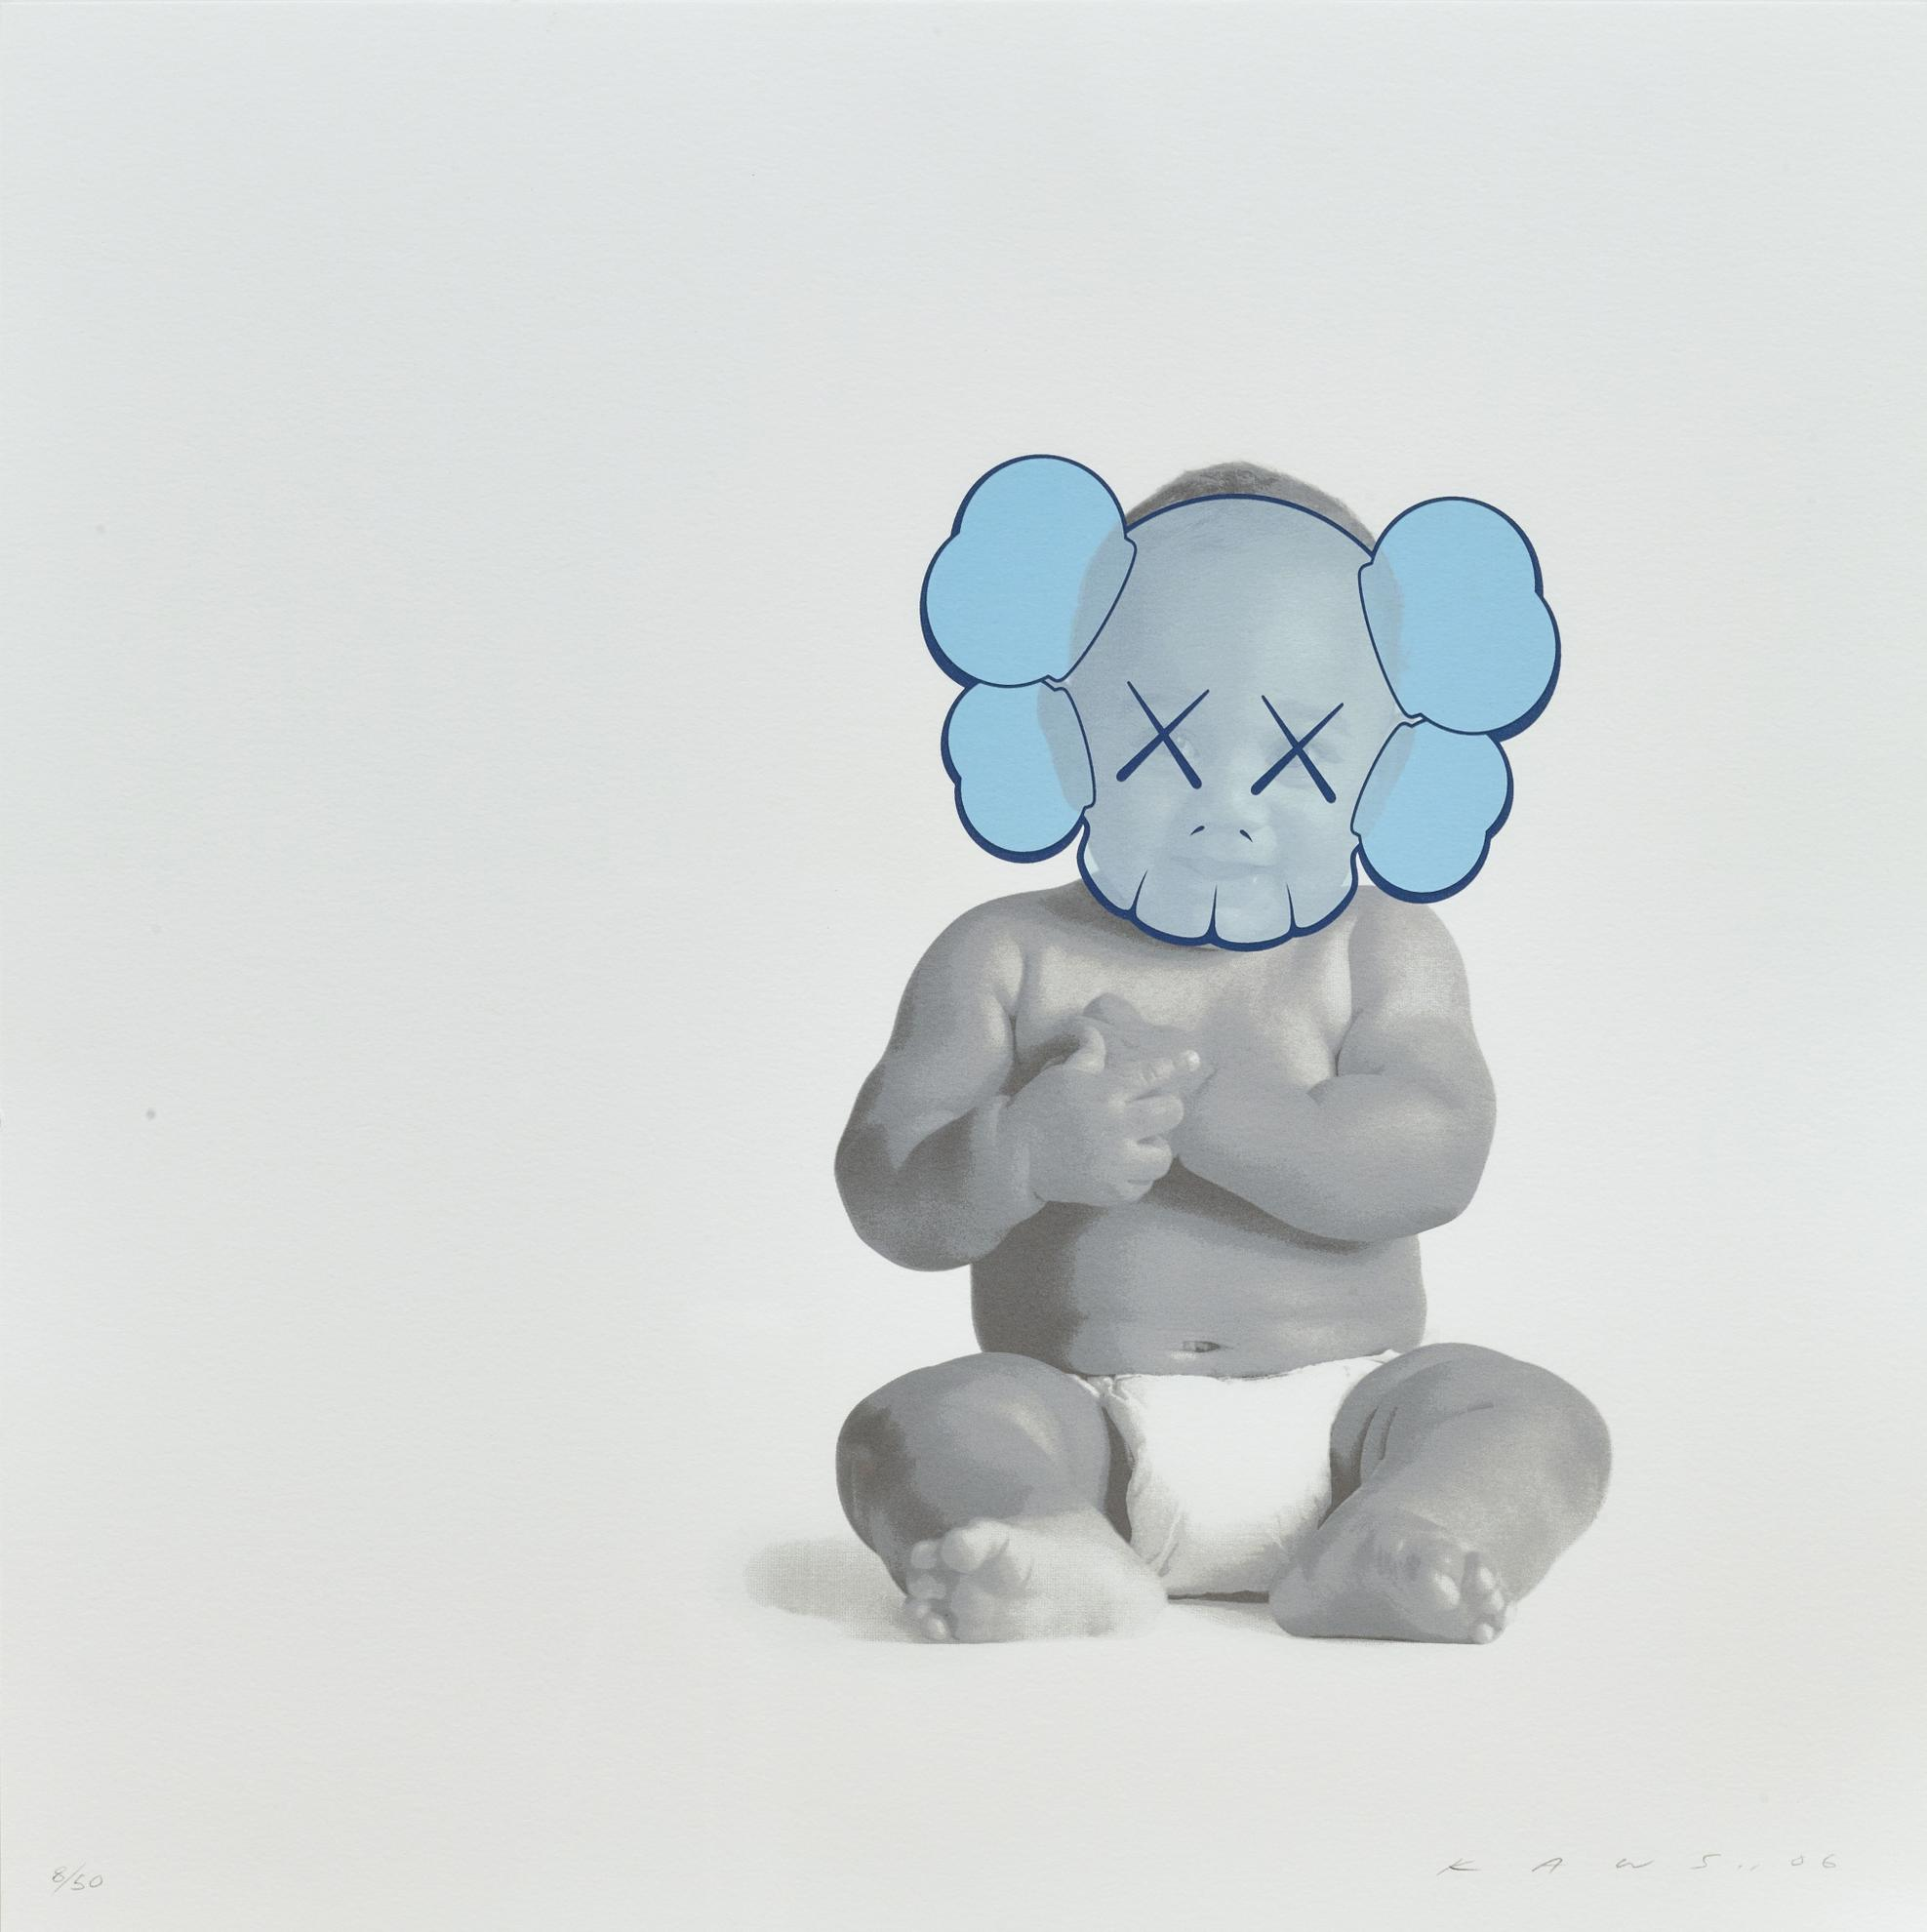 KAWS-Untitled-2006